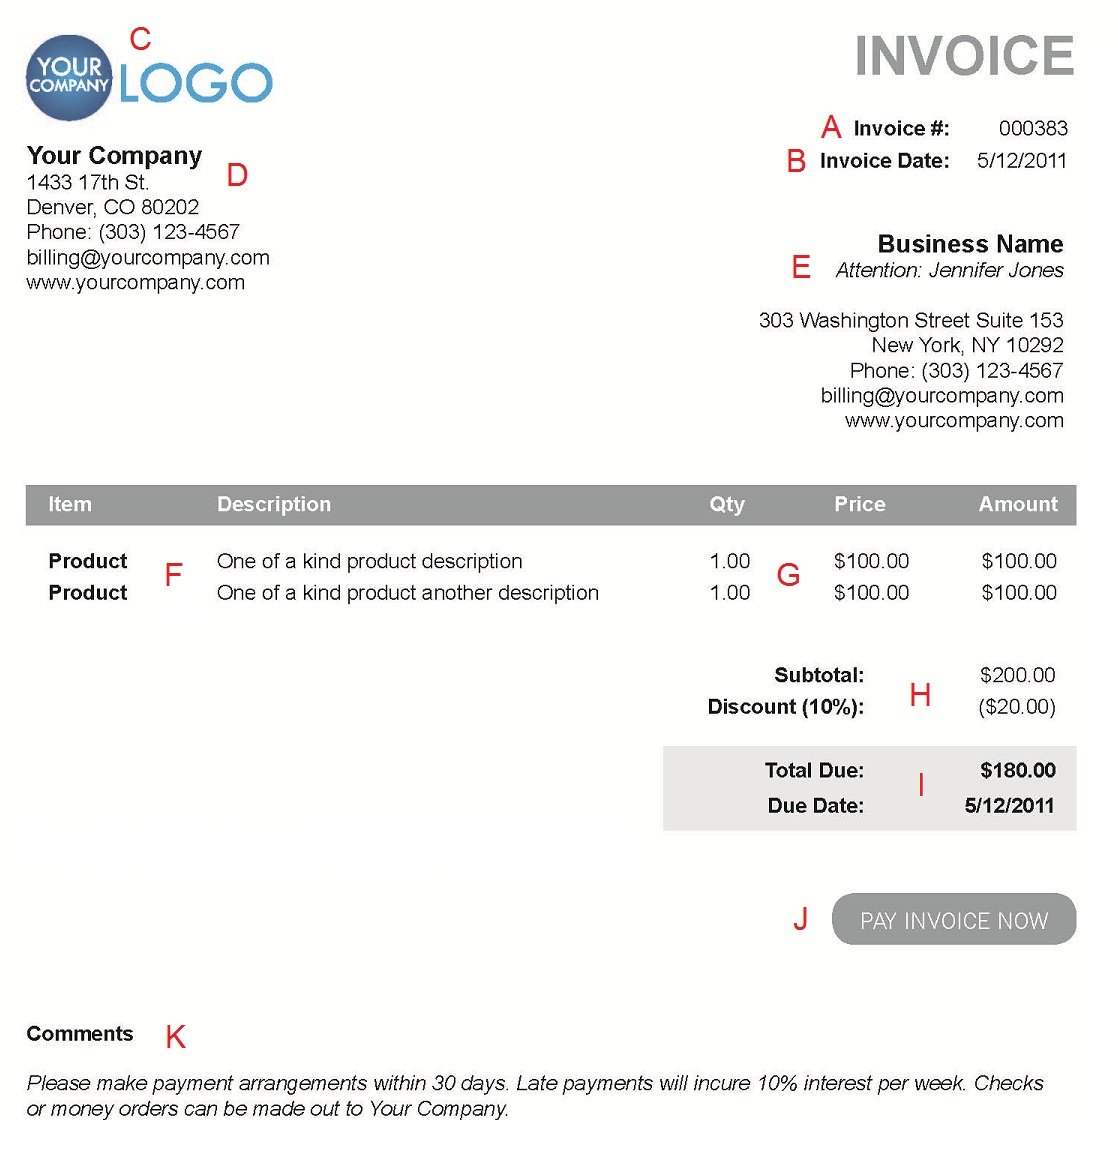 Totallocalus  Pleasant The  Different Sections Of An Electronic Payment Invoice With Goodlooking A  With Nice Invoice Number Example Also Formal Invoice Template In Addition Payment Due Upon Receipt Of Invoice And Sales Invoice Templates As Well As Wawf Invoice Instructions Additionally How To Write An Invoice Template From Paysimplecom With Totallocalus  Goodlooking The  Different Sections Of An Electronic Payment Invoice With Nice A  And Pleasant Invoice Number Example Also Formal Invoice Template In Addition Payment Due Upon Receipt Of Invoice From Paysimplecom